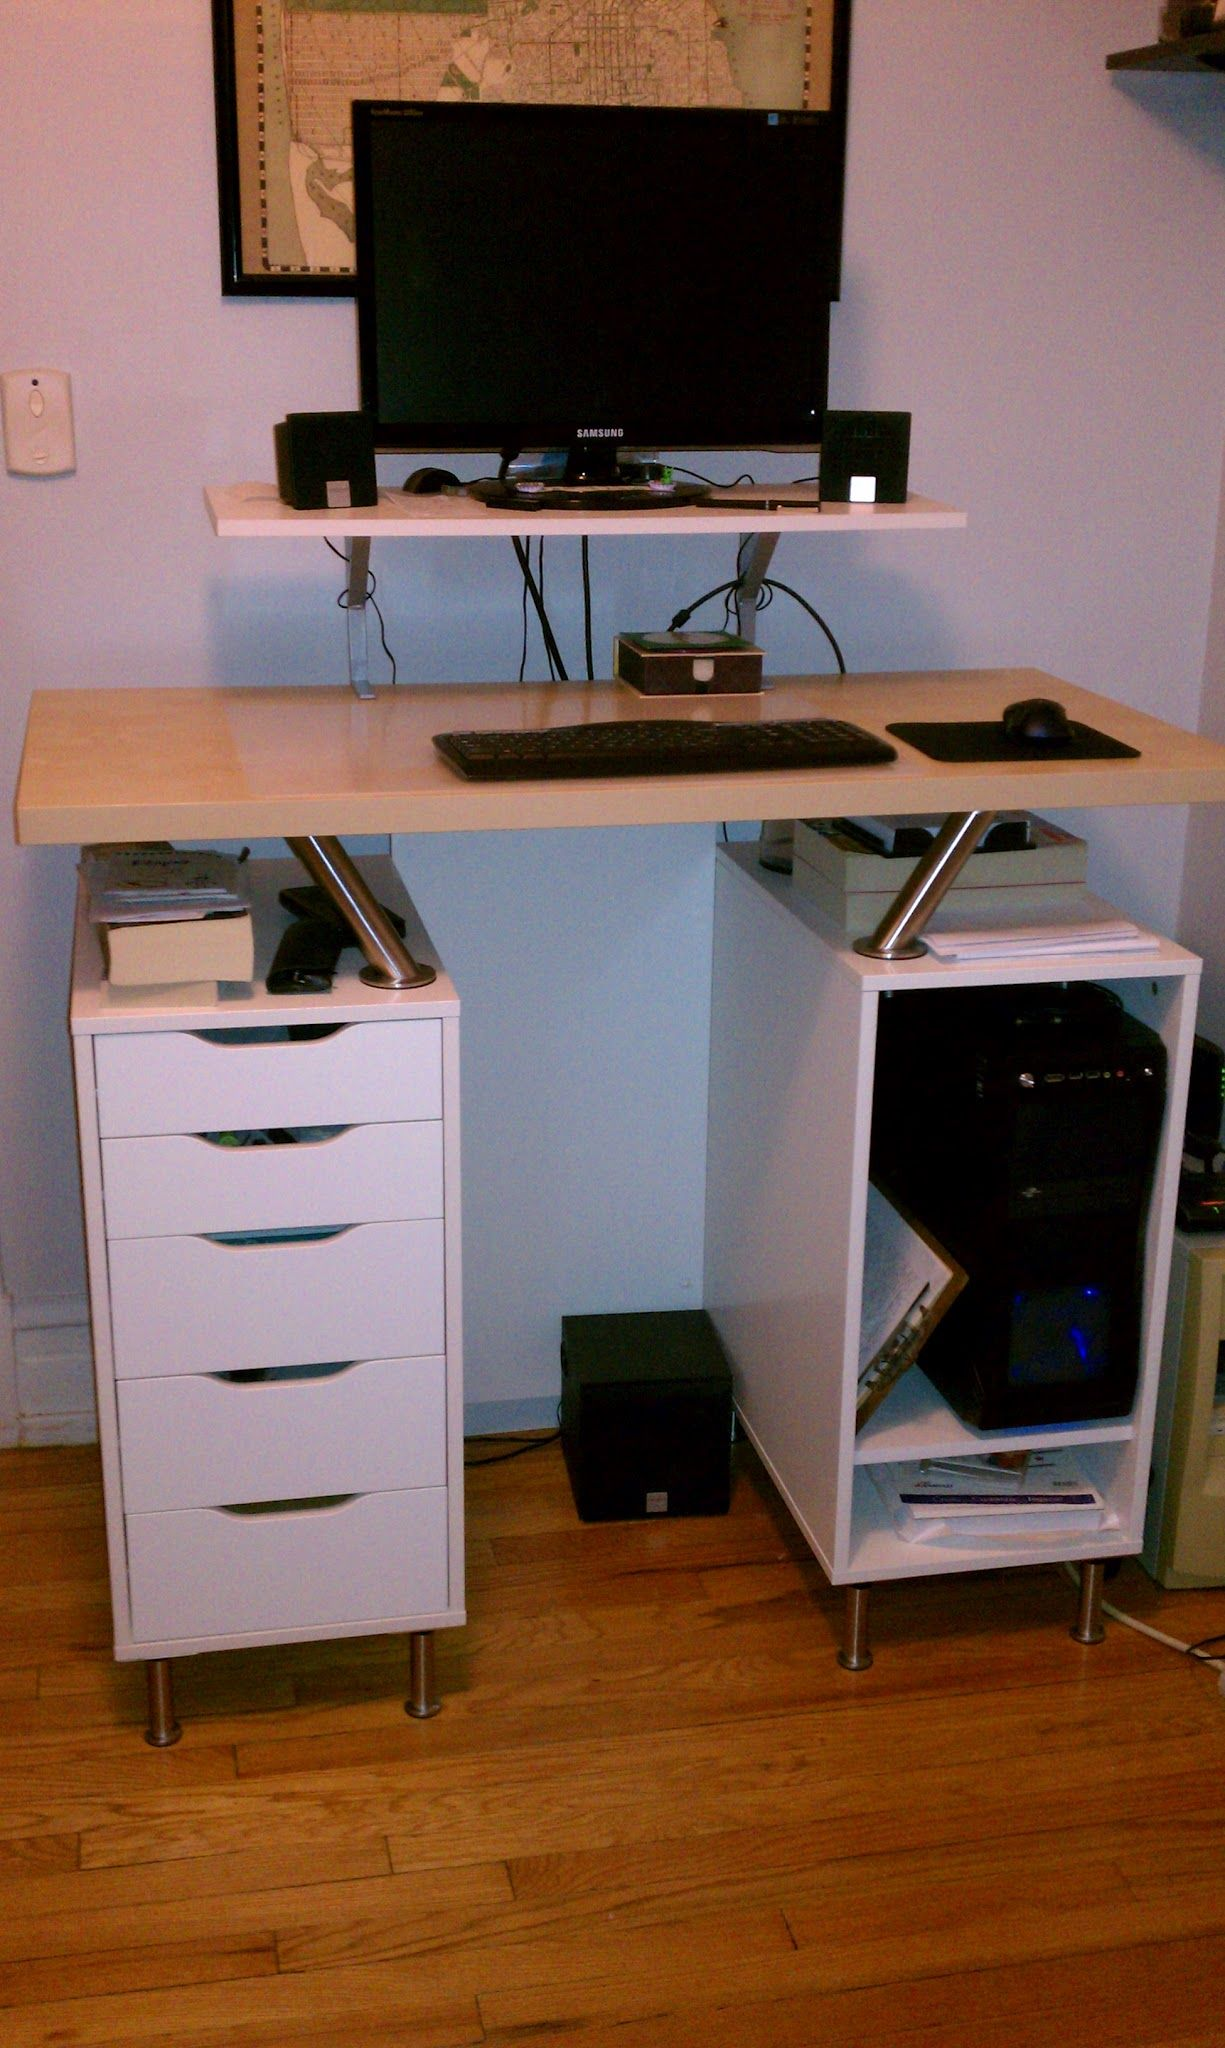 Diy ikea standing desk - Another Nice Ikea Hack Standing Desk Using Capita Brackets And Legs By Justin D Hoffman